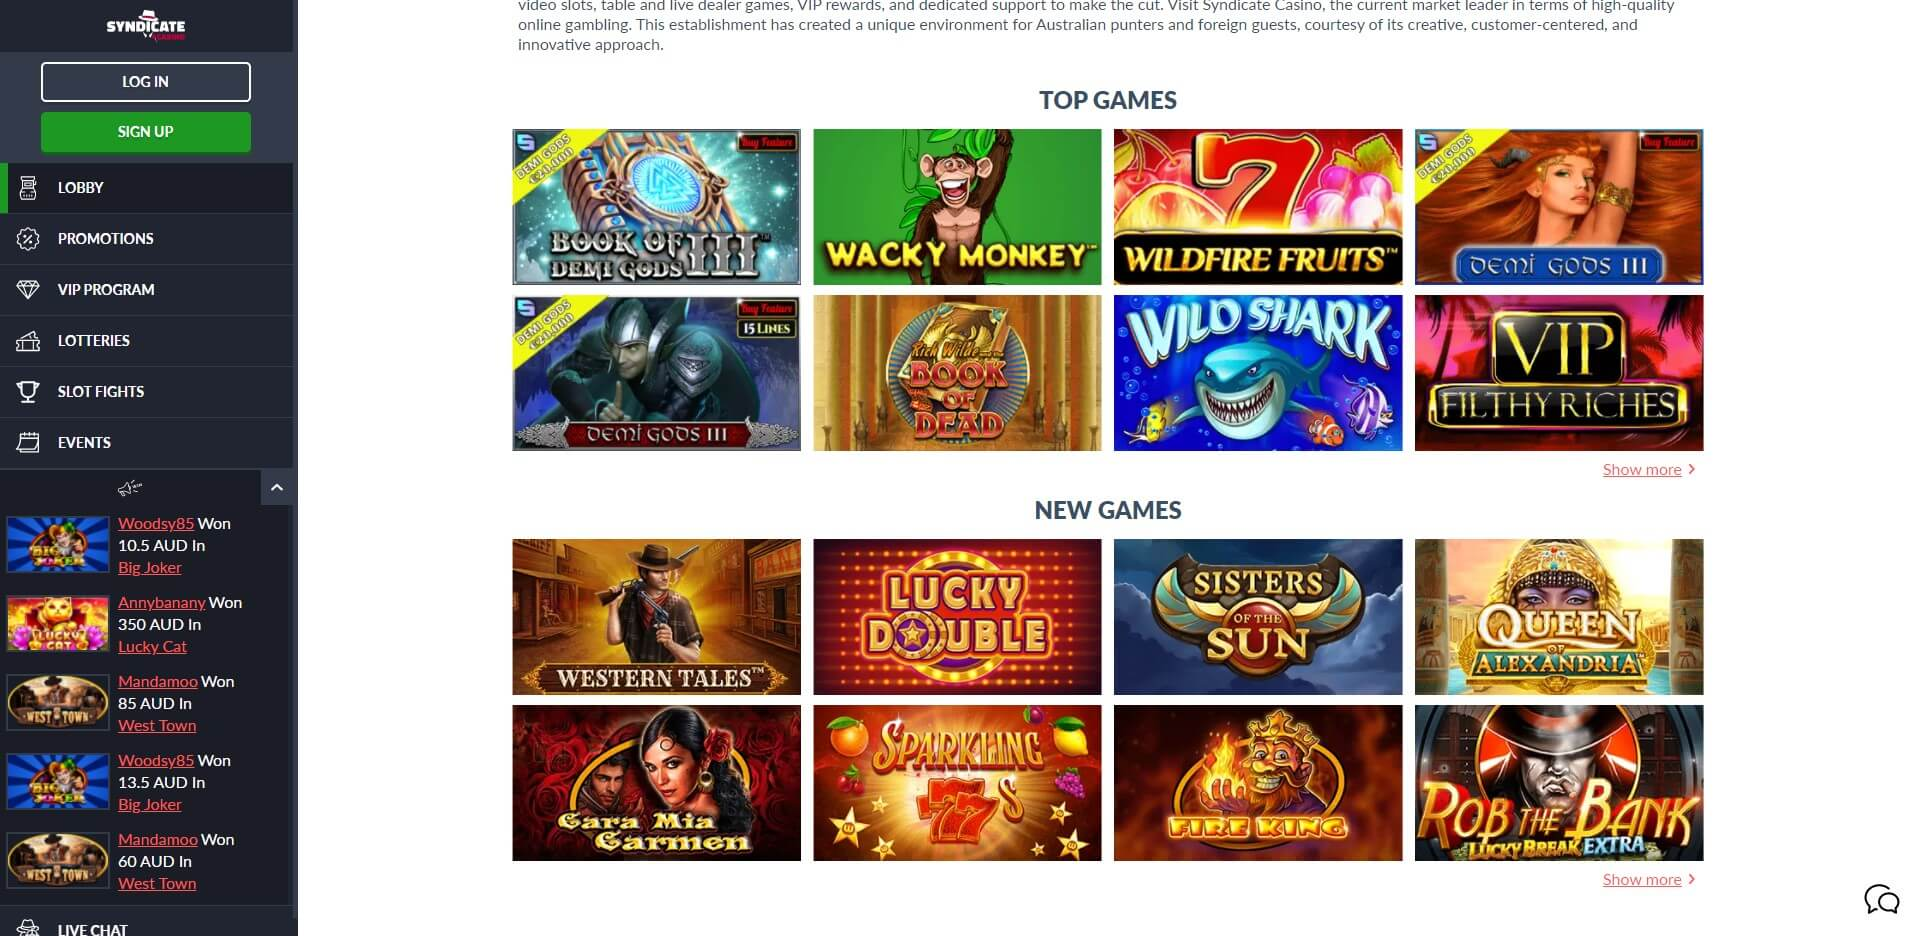 Games at Syndicate Casino